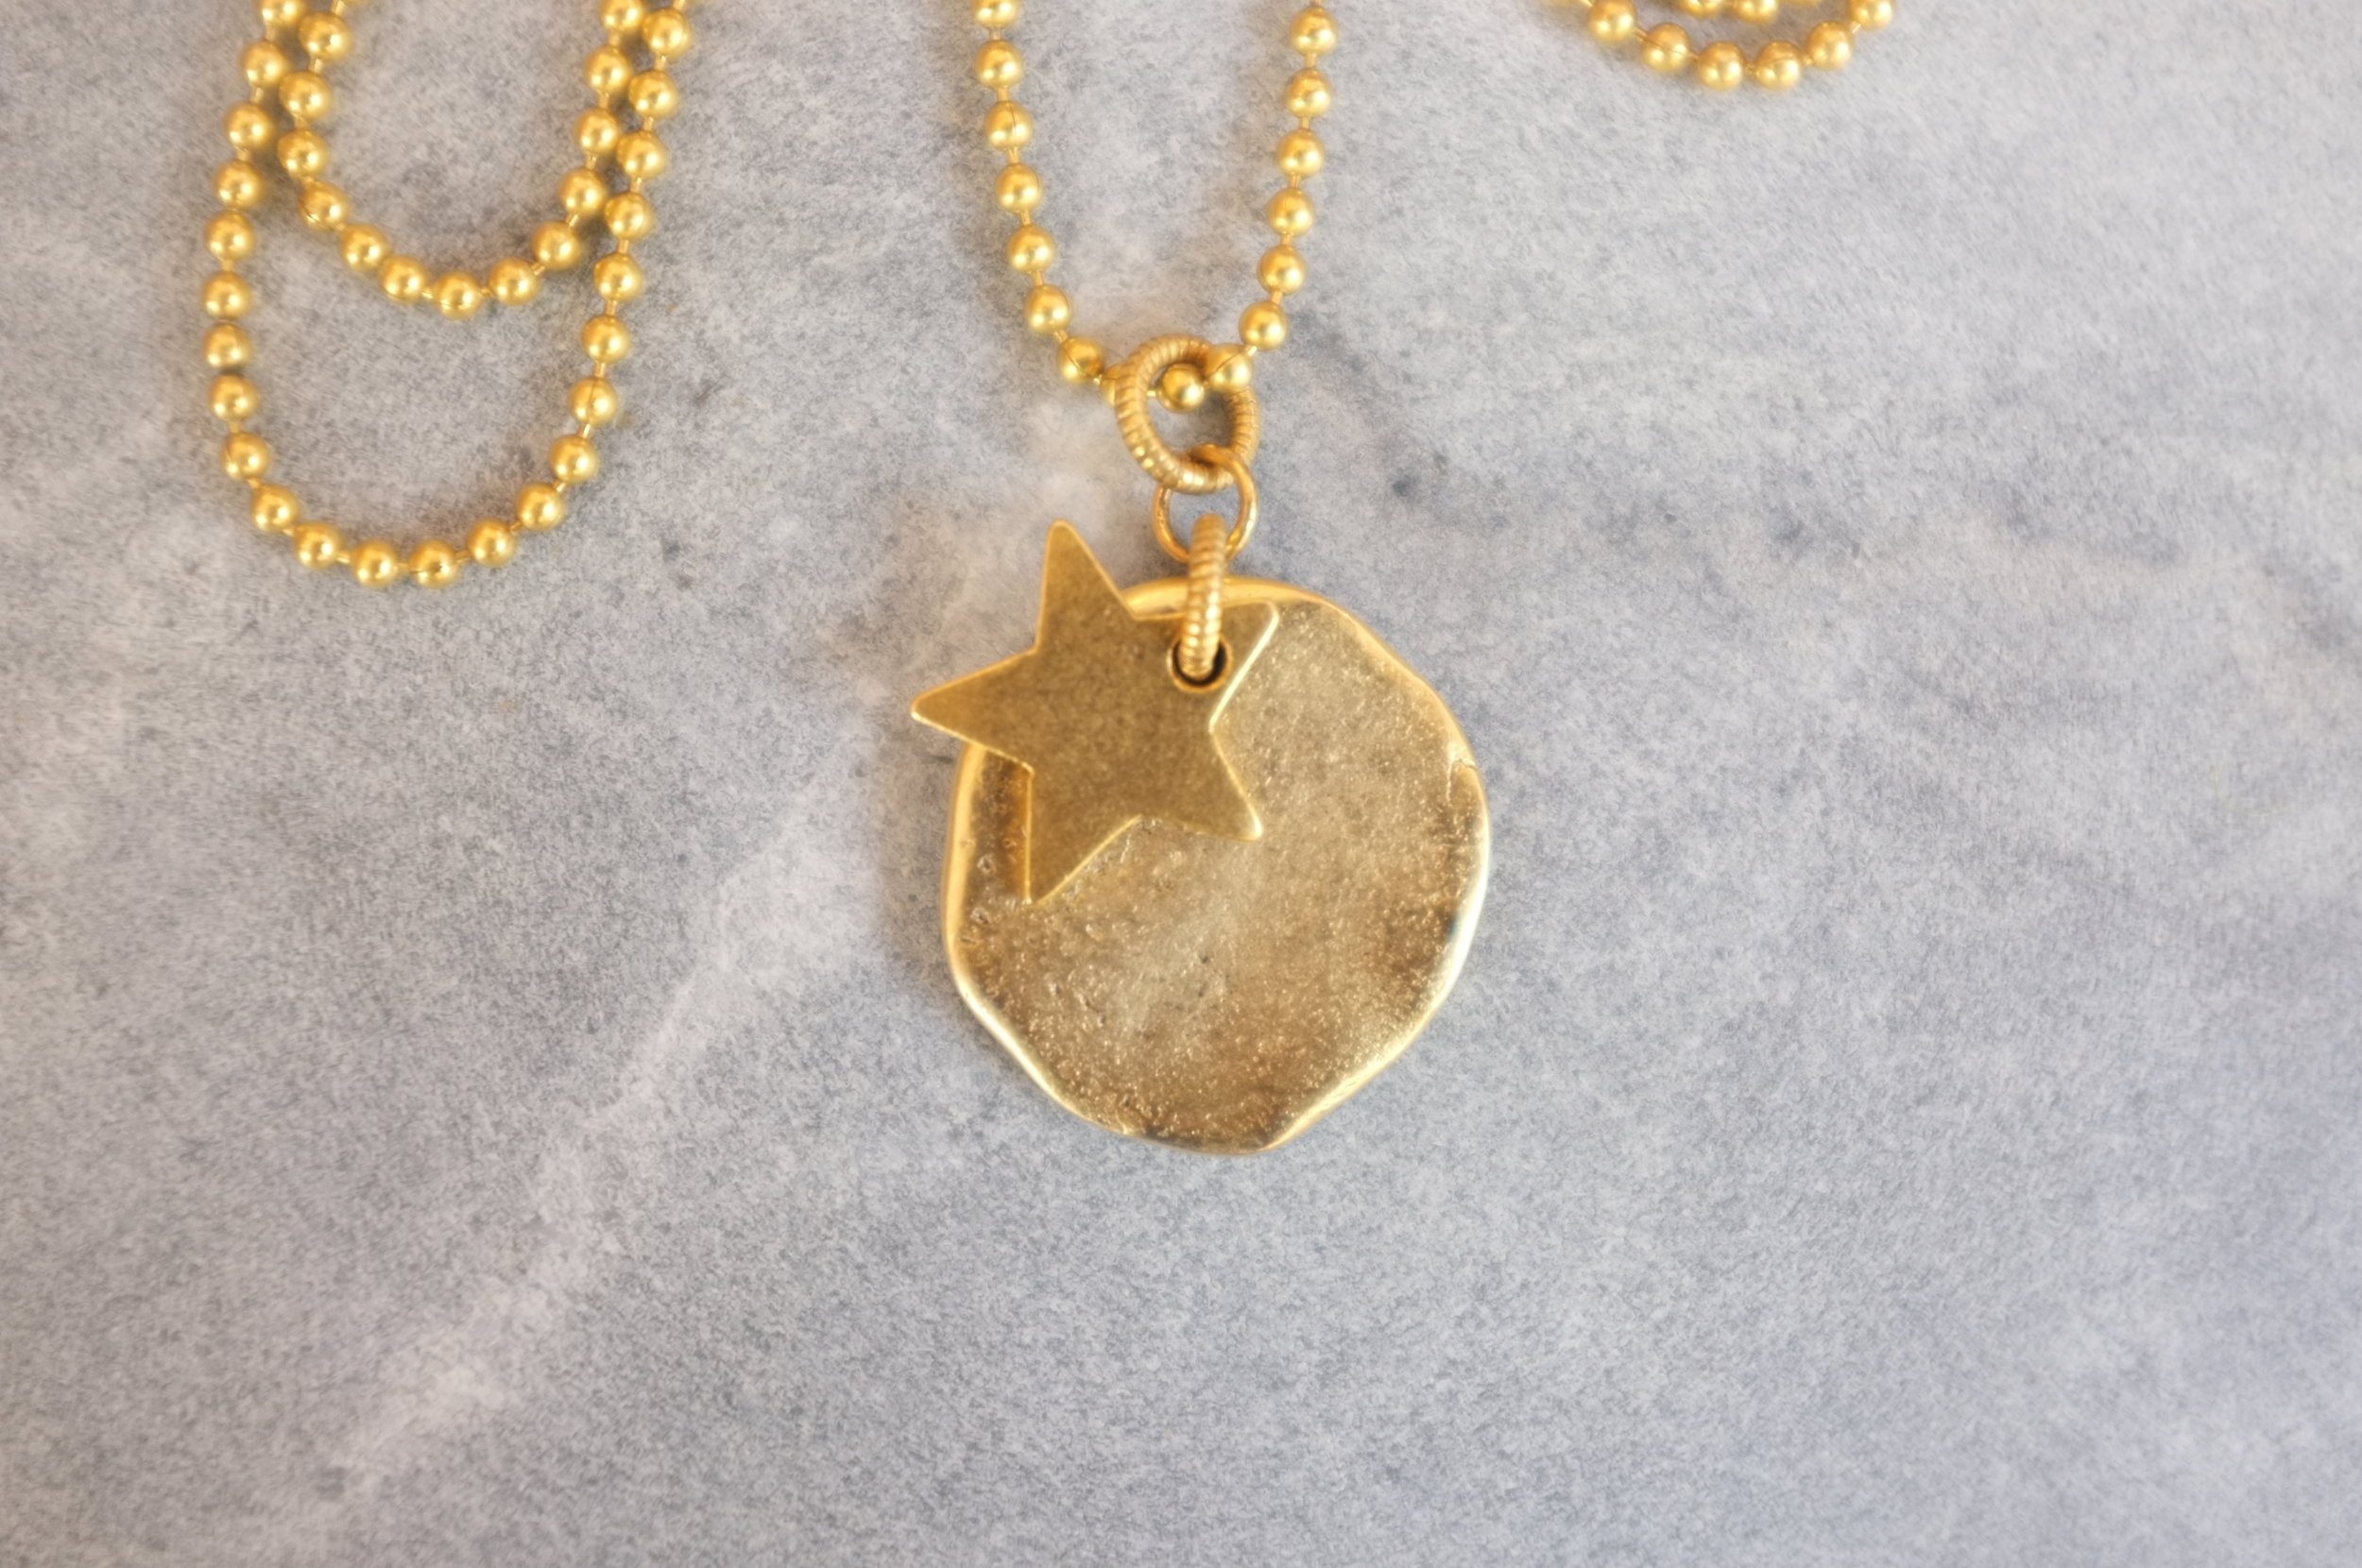 Copy of Full Moon pendant necklace in gold